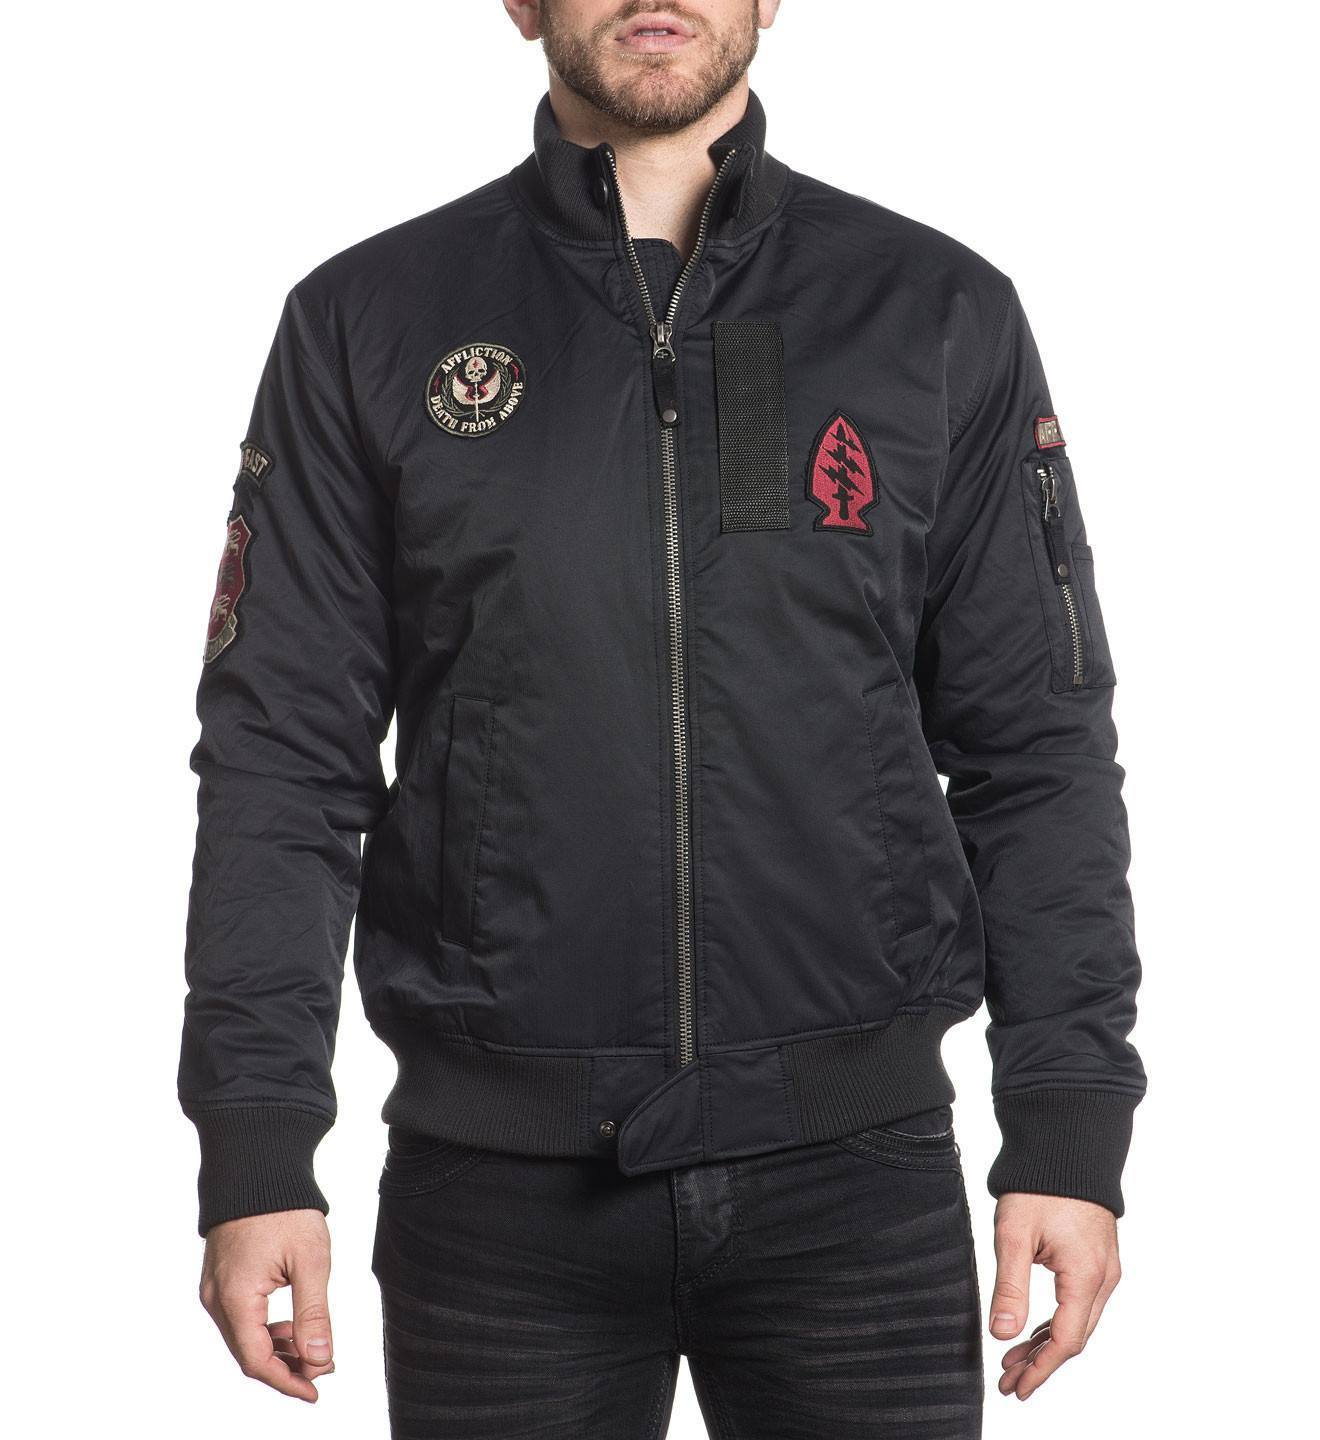 Fly High - Mens Jackets - Affliction Clothing